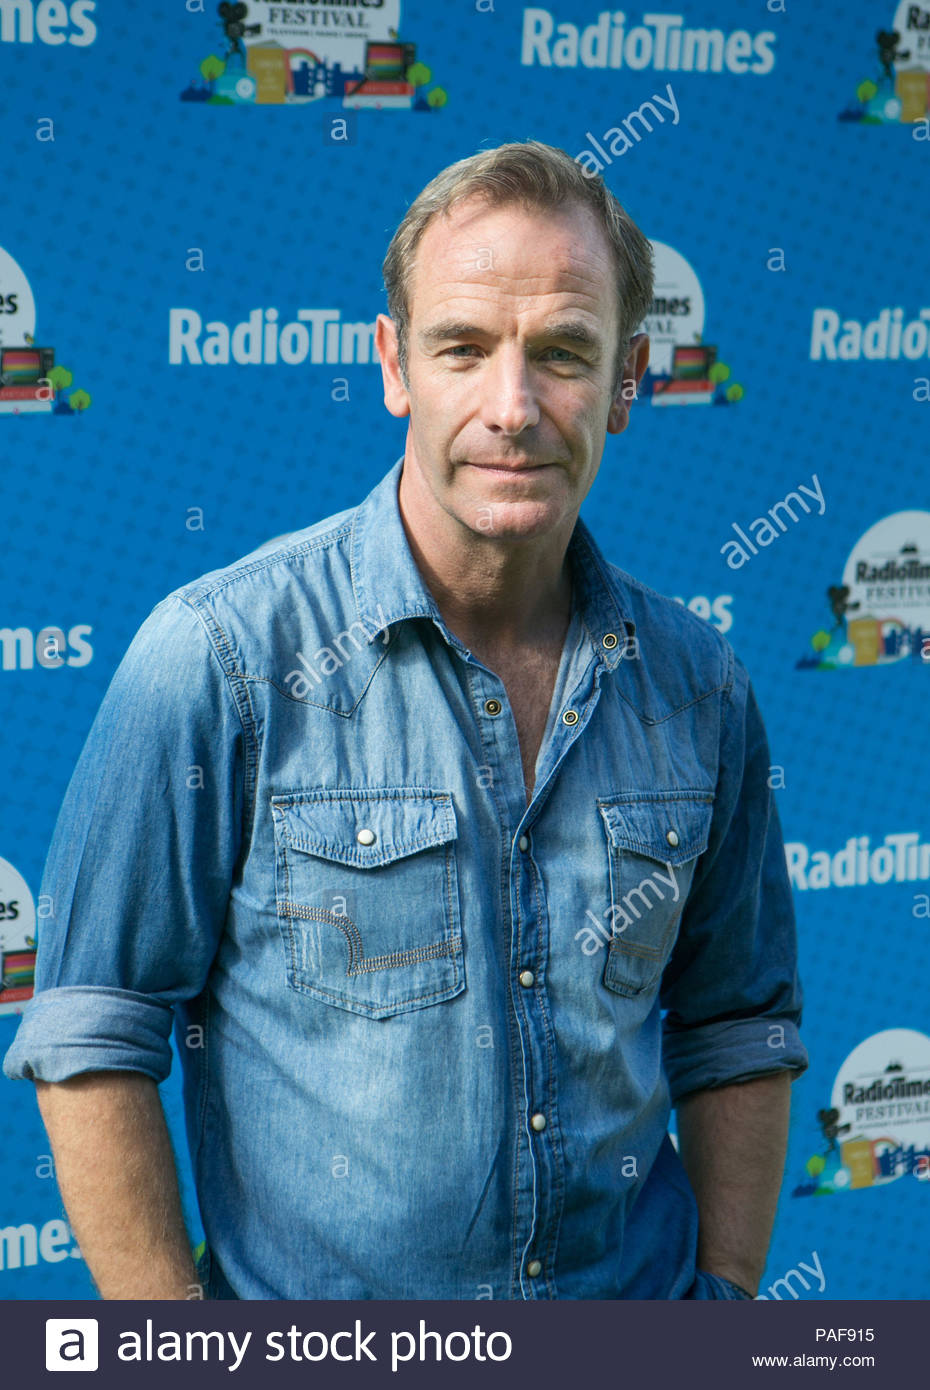 Robson Green Stock Photos & Robson Green Stock Images - Page 2 - Alamy